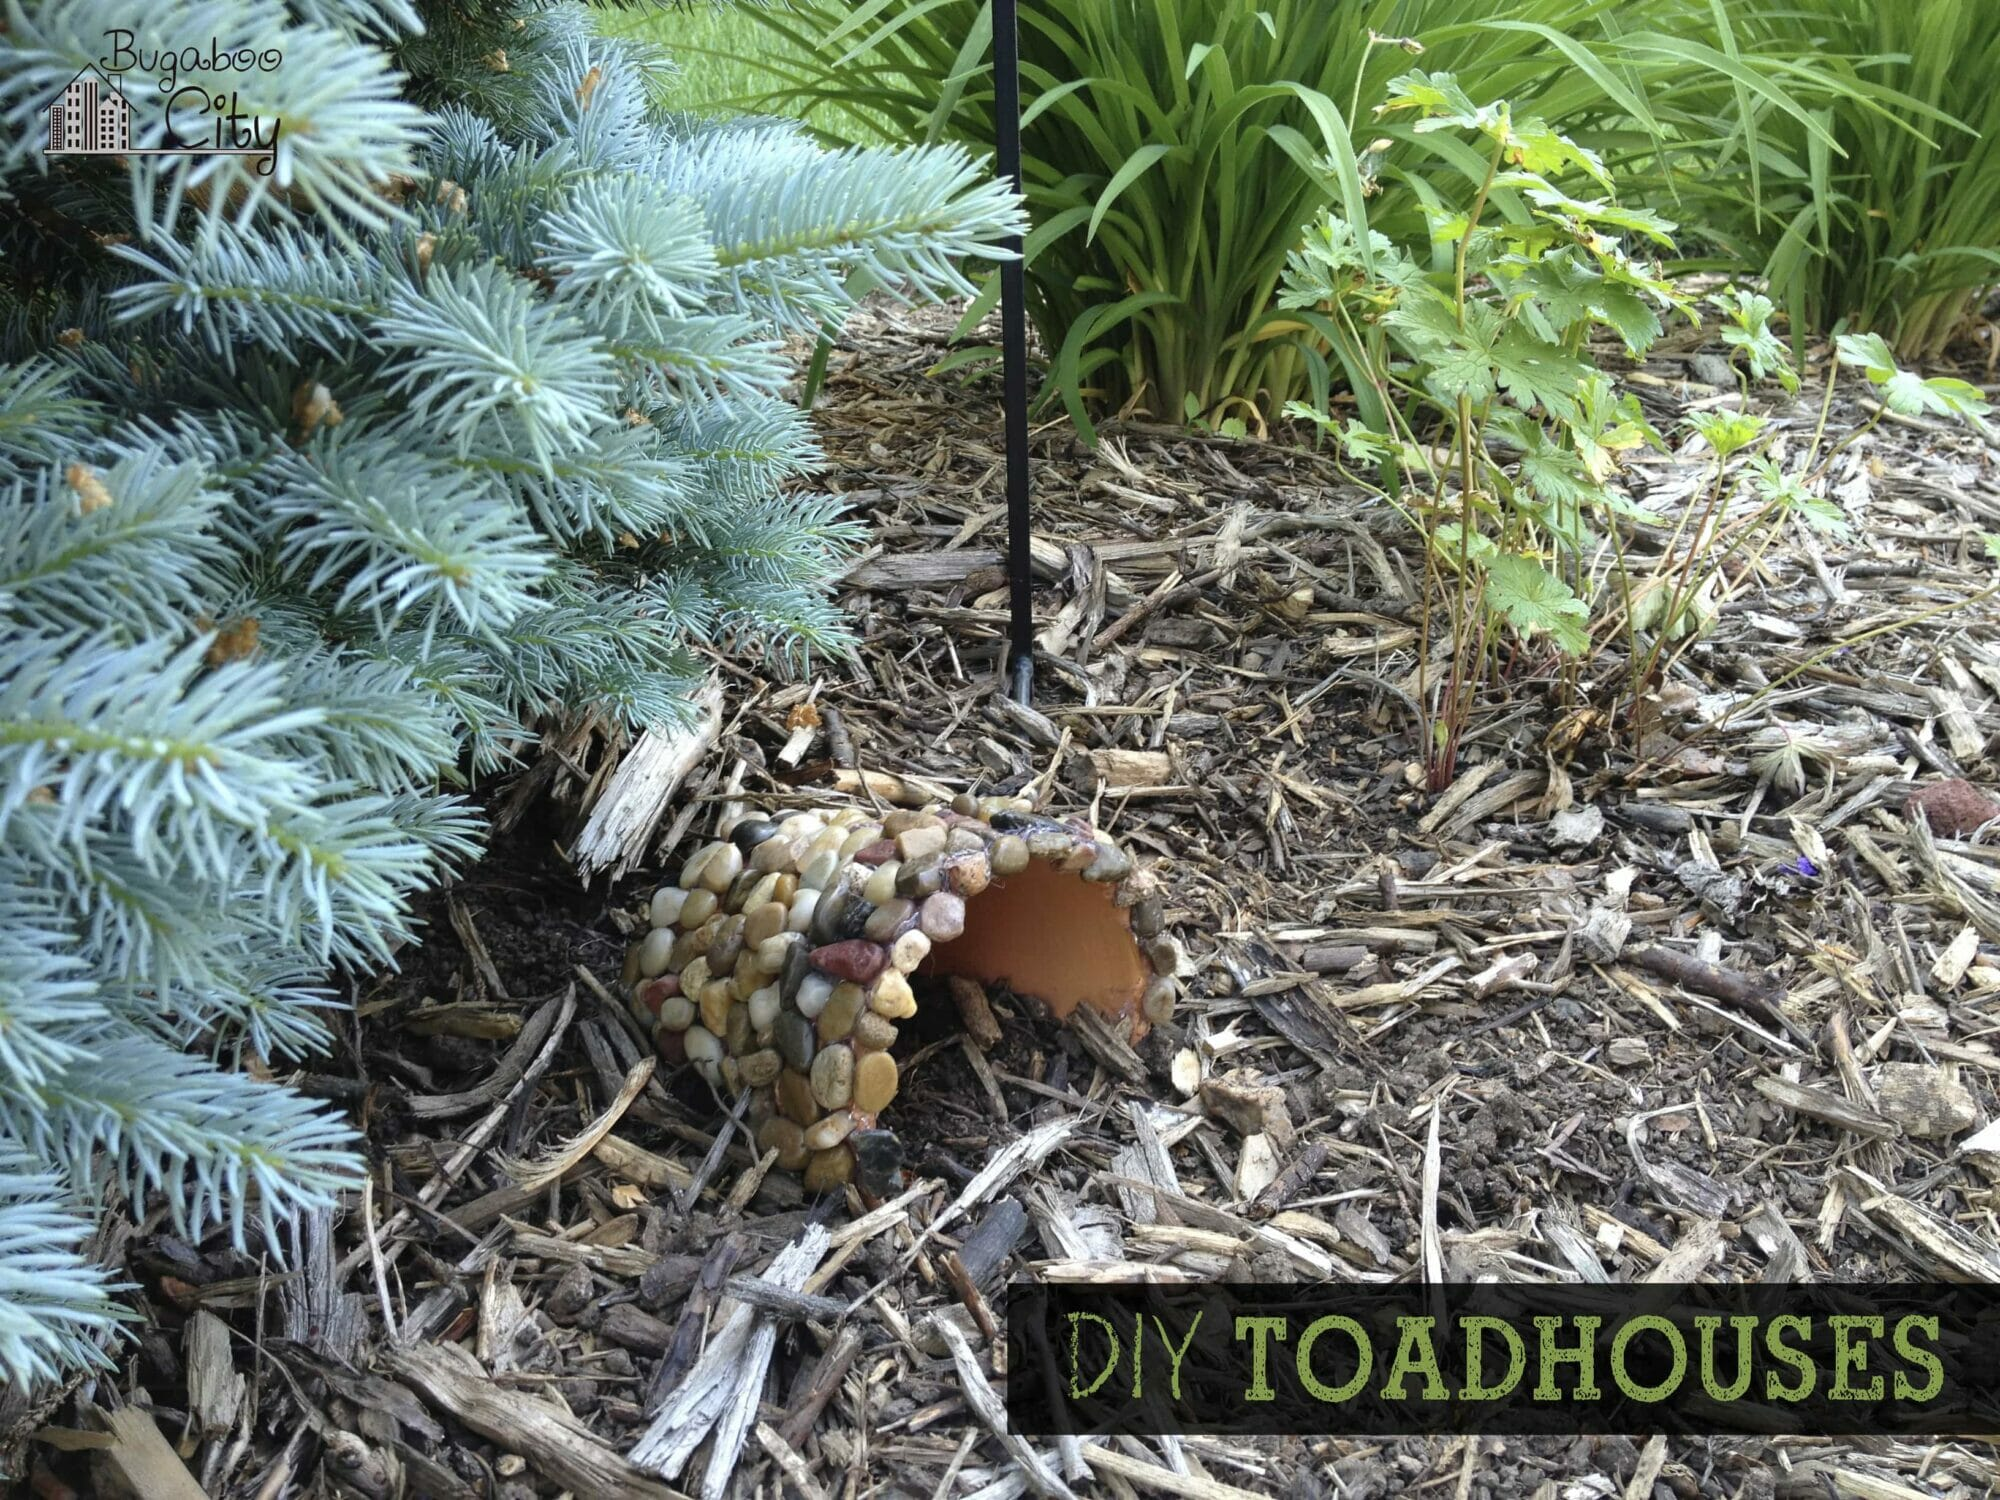 Diy toad houses bugaboocity this fun diy project is perfect for a rainy afternoon toad houses and toad caves are a fun addition to any publicscrutiny Gallery